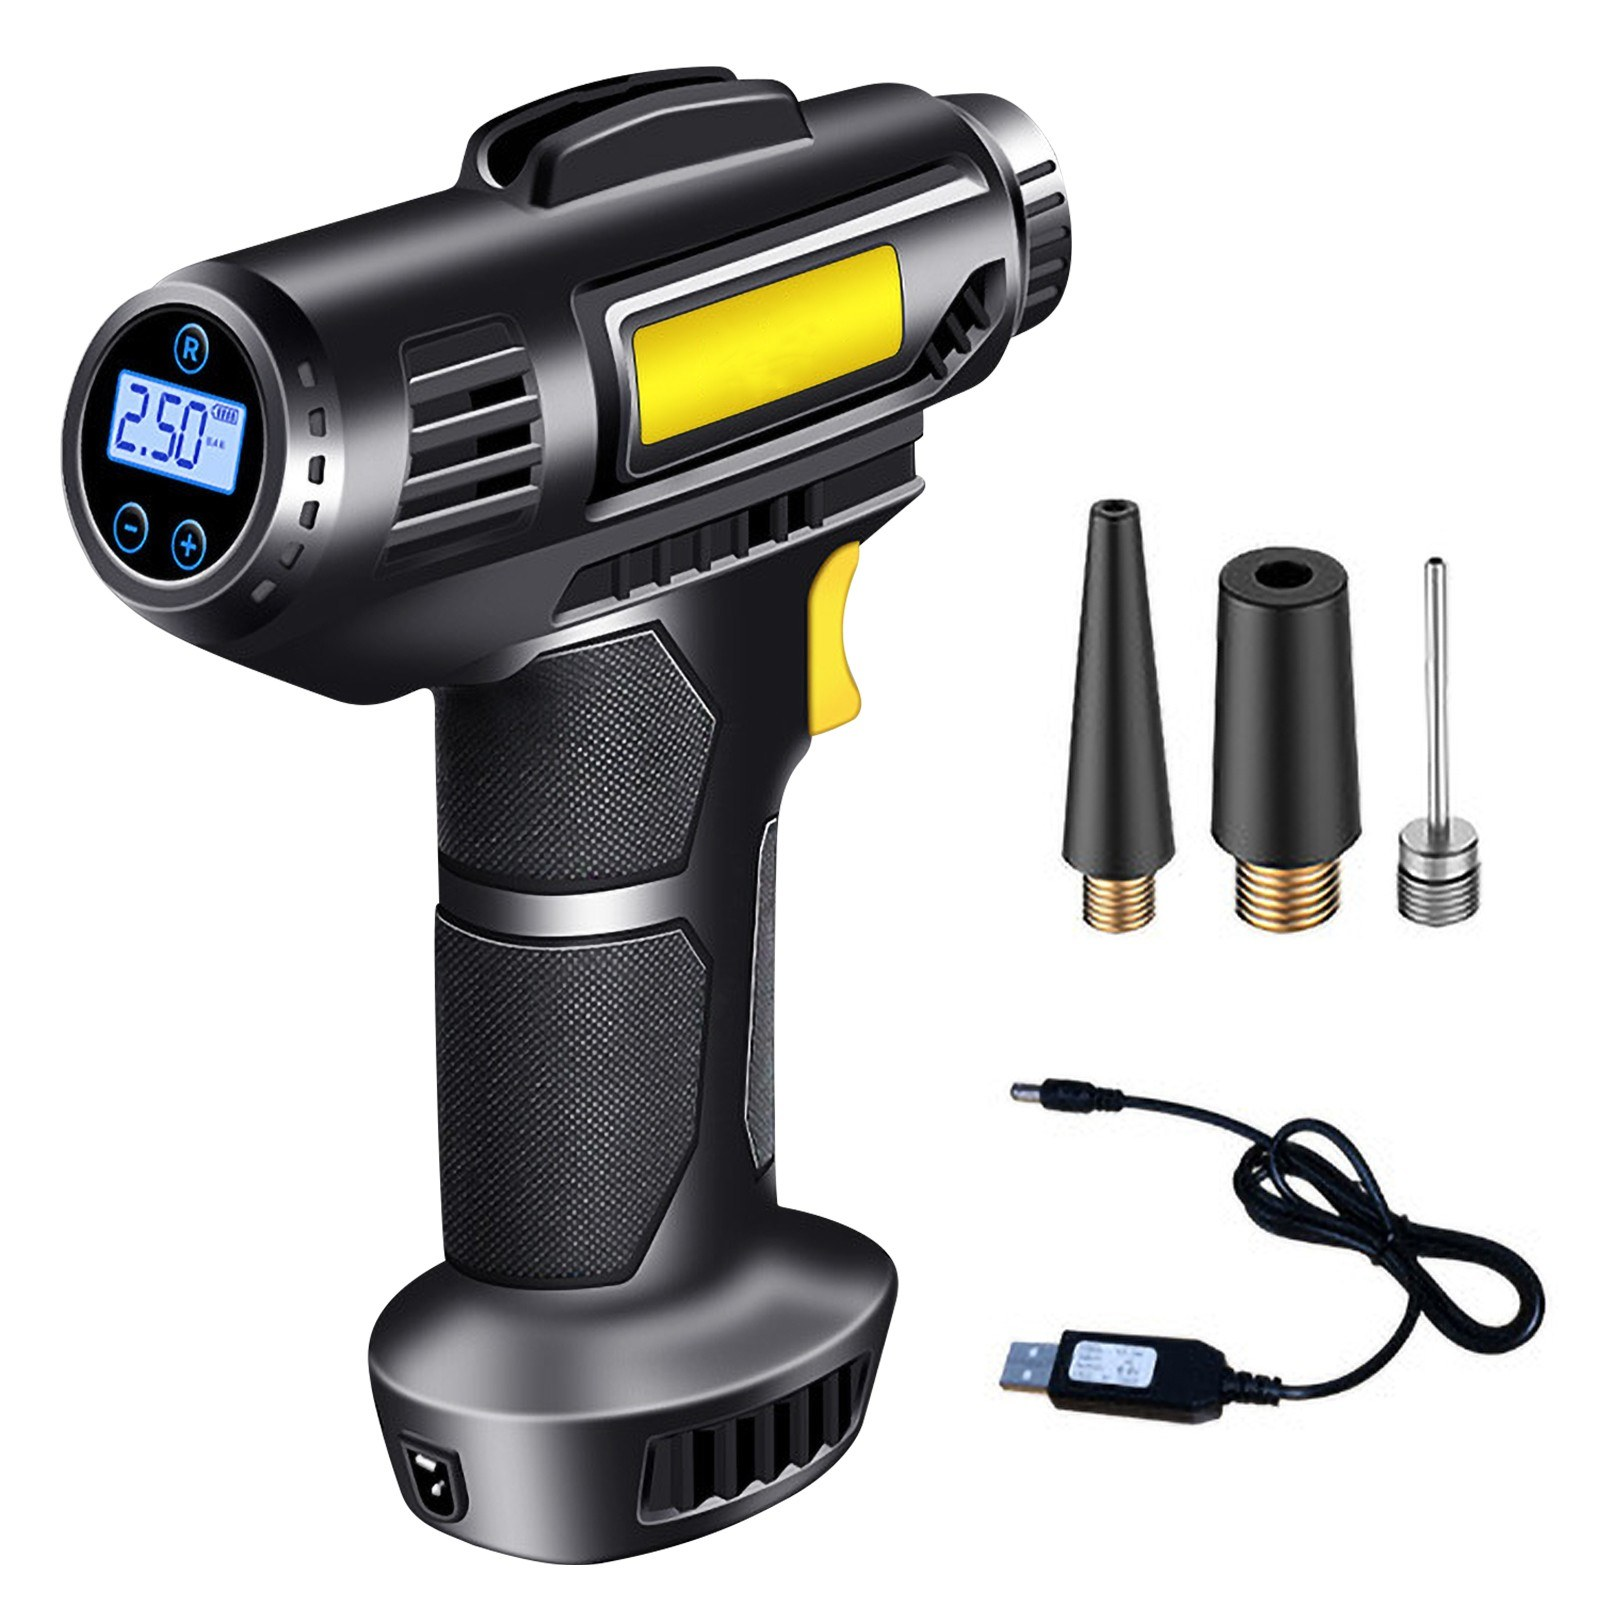 Tomtop - 62% OFF 4000mAh Tire Inflator Electric Handheld Cordless Bicycle Pump, $29.99 (Inclusive of VAT)